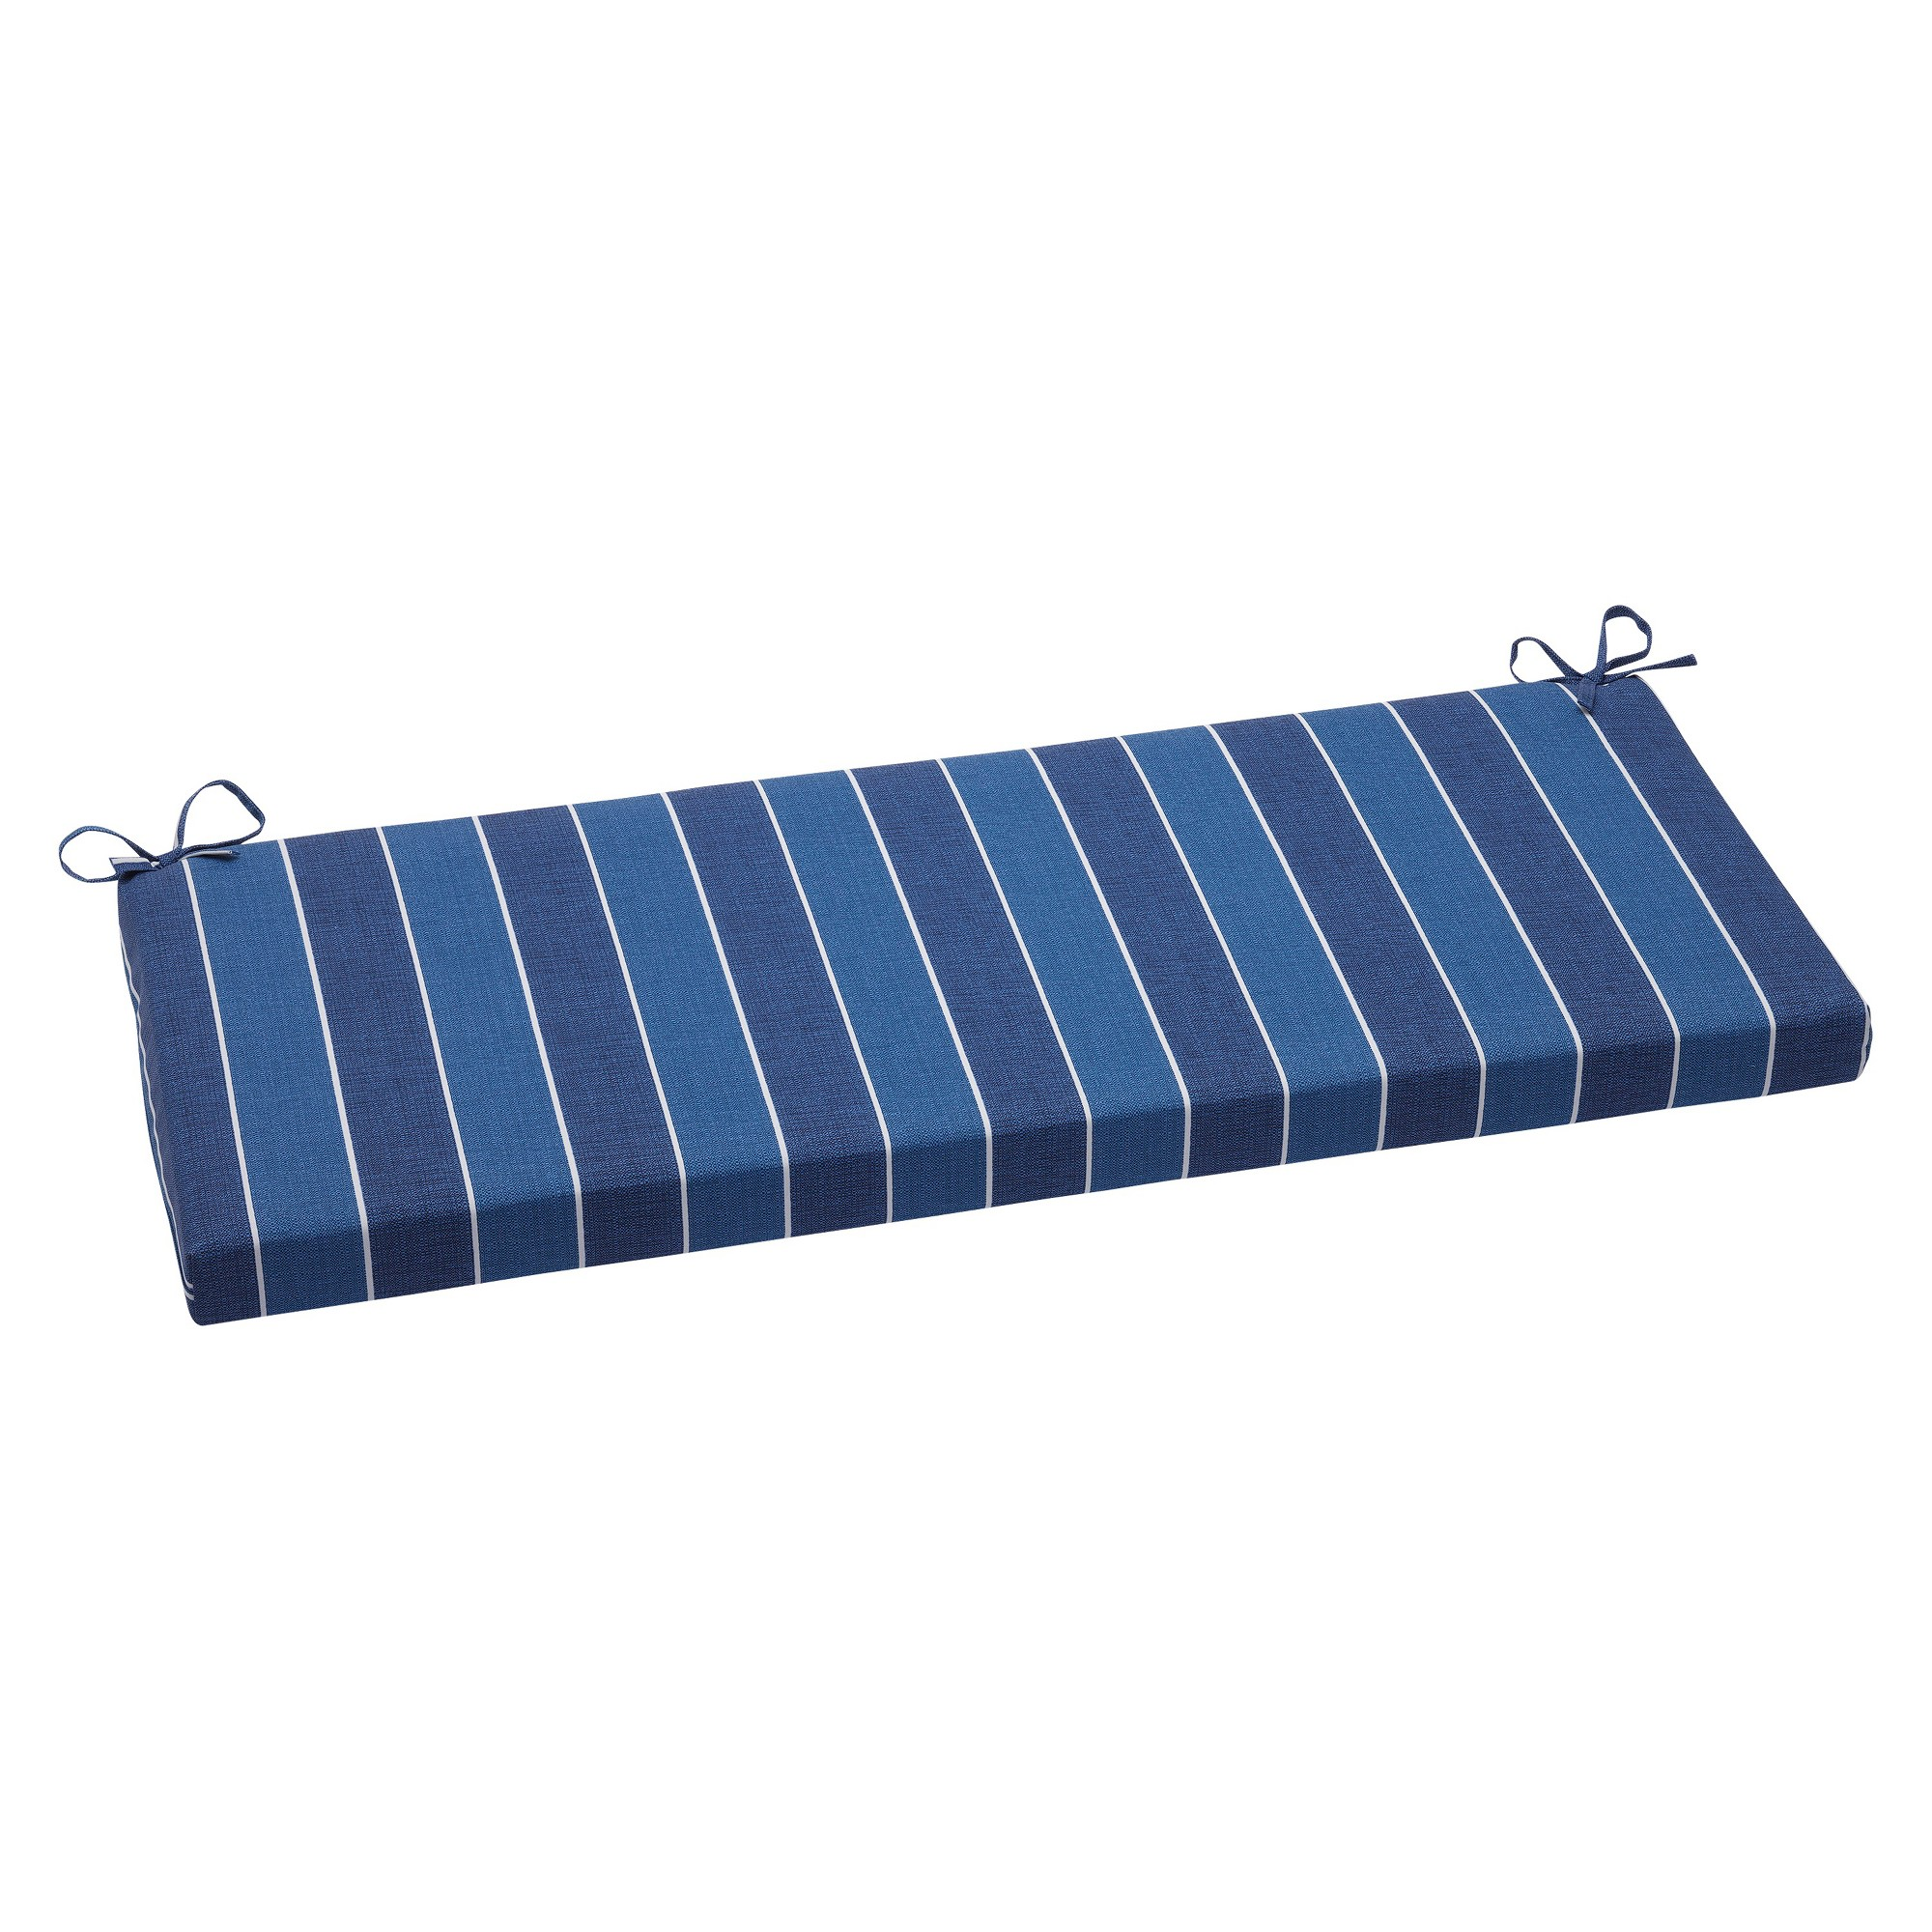 Pillow Perfect Wickenburg Outdoor Bench Cushion - Blue, Blue/White